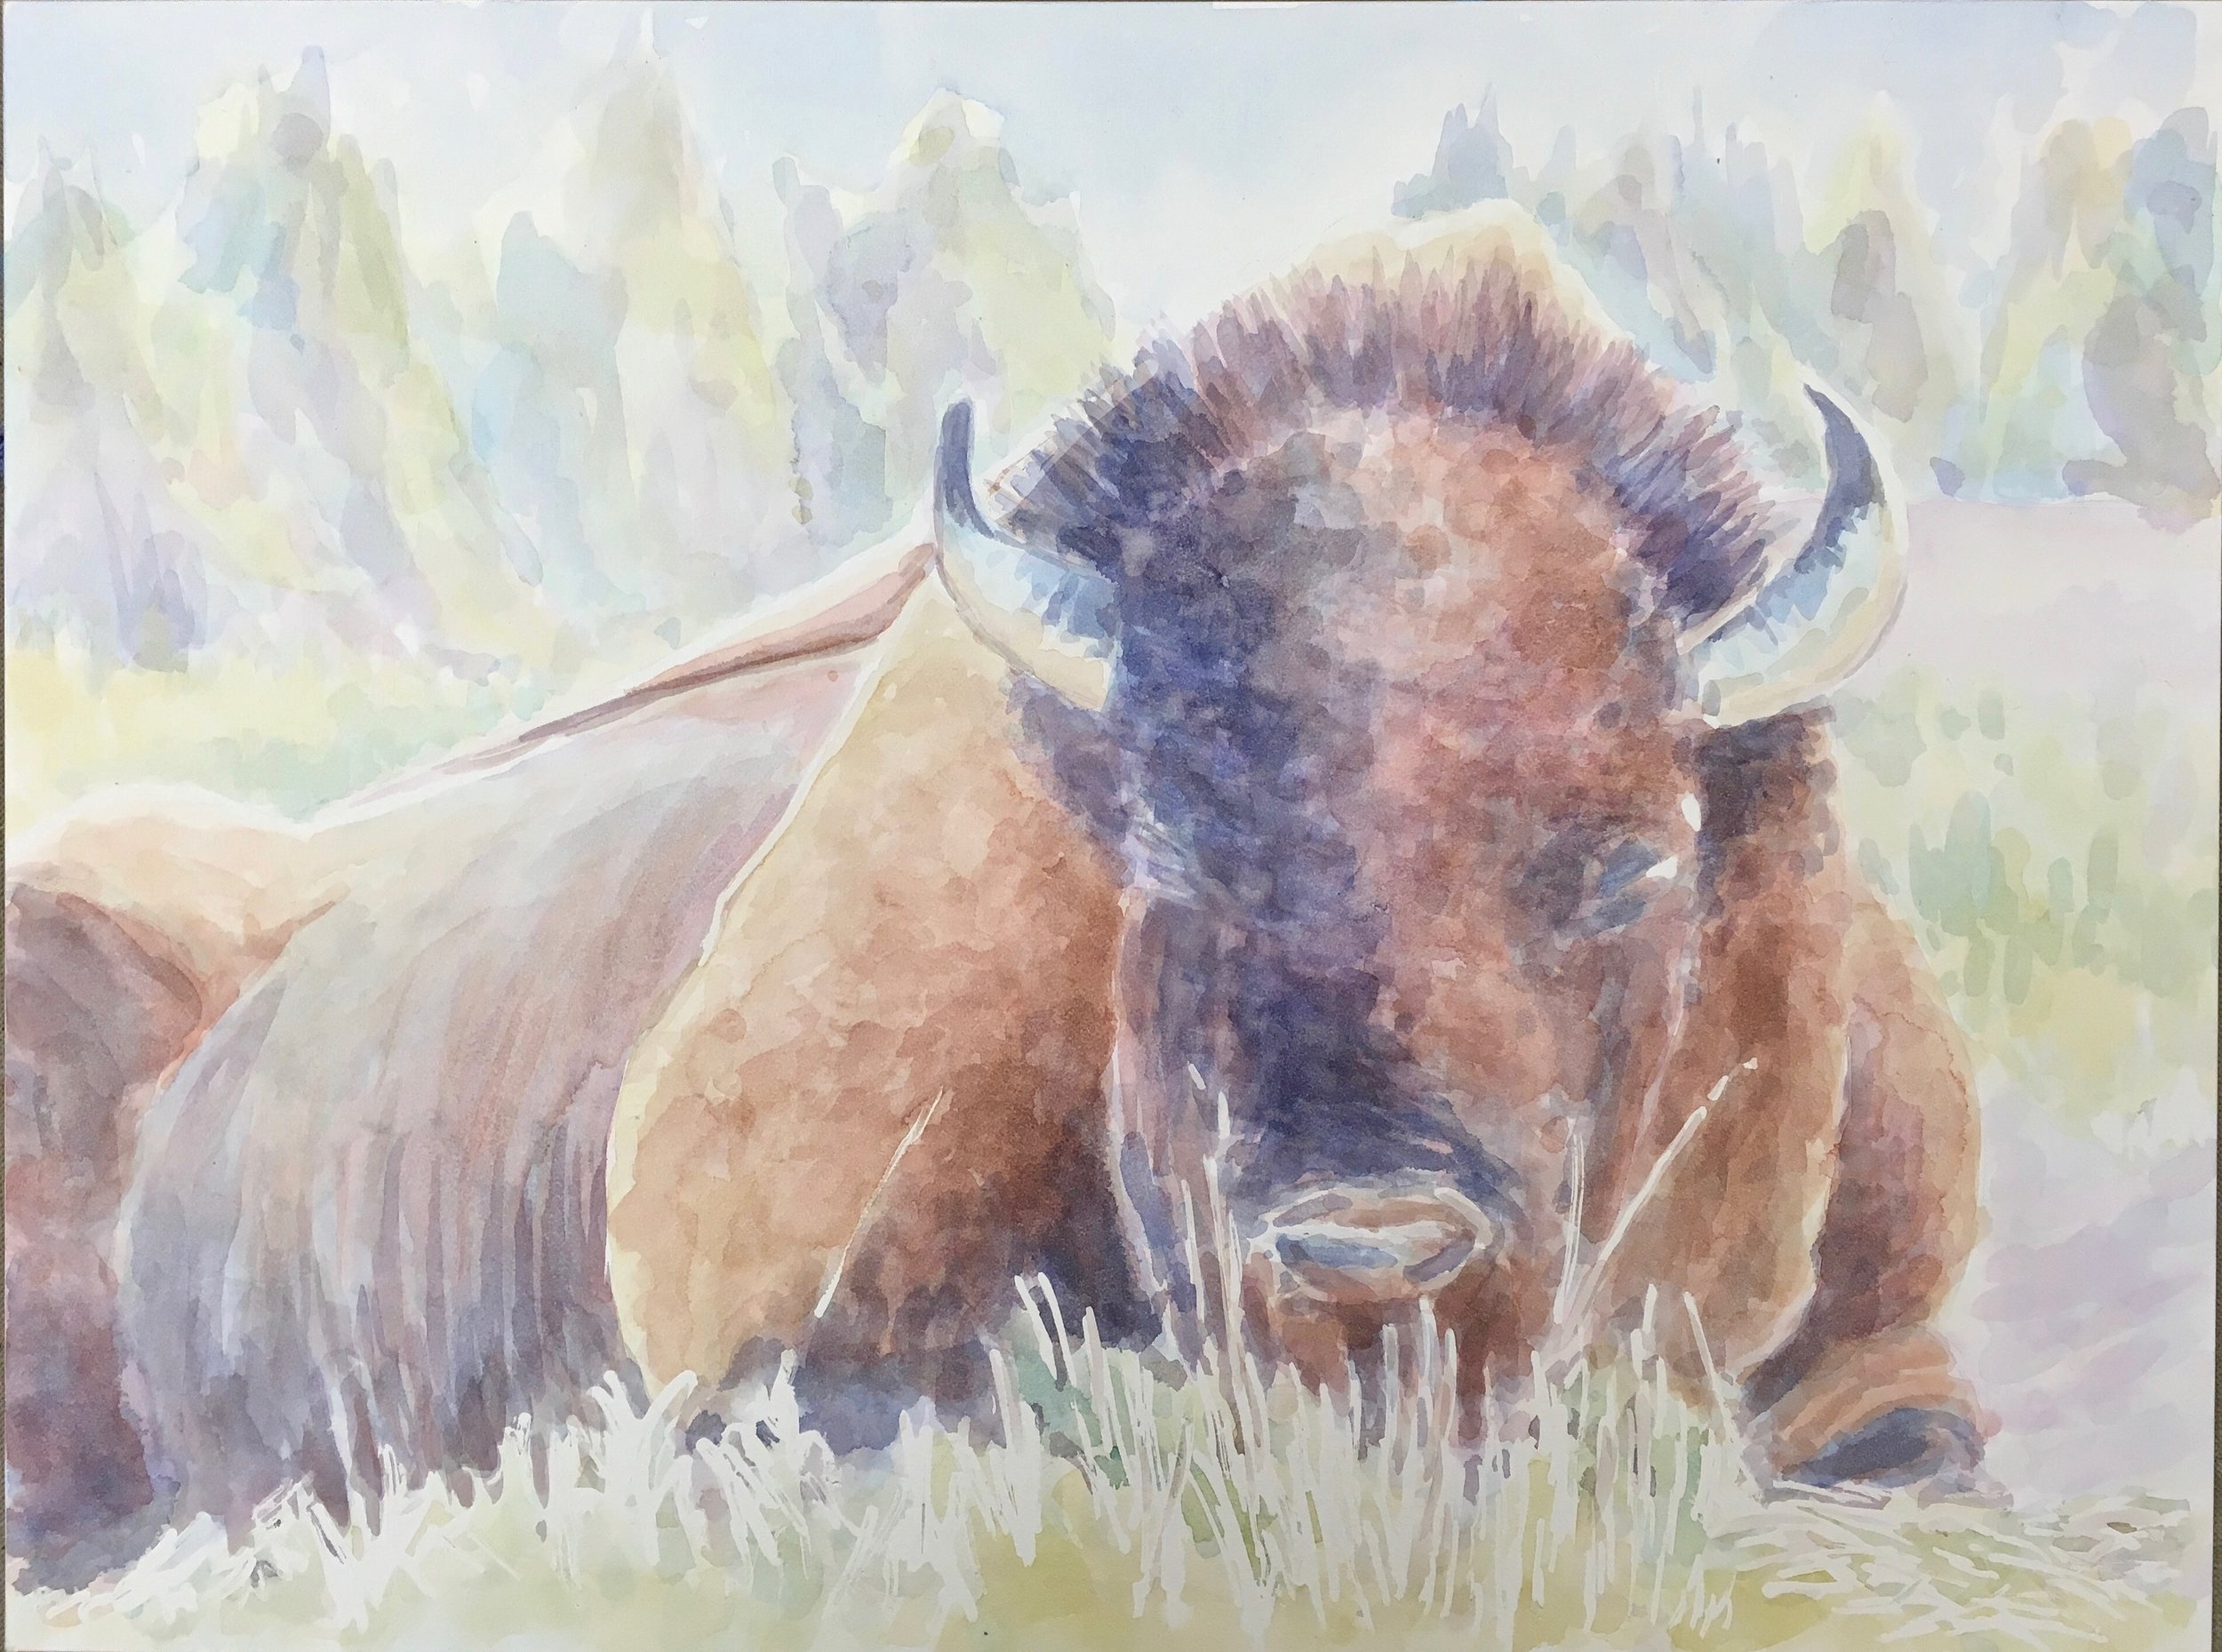 Bison Sleeping, Yellowstone National Park - watercolor